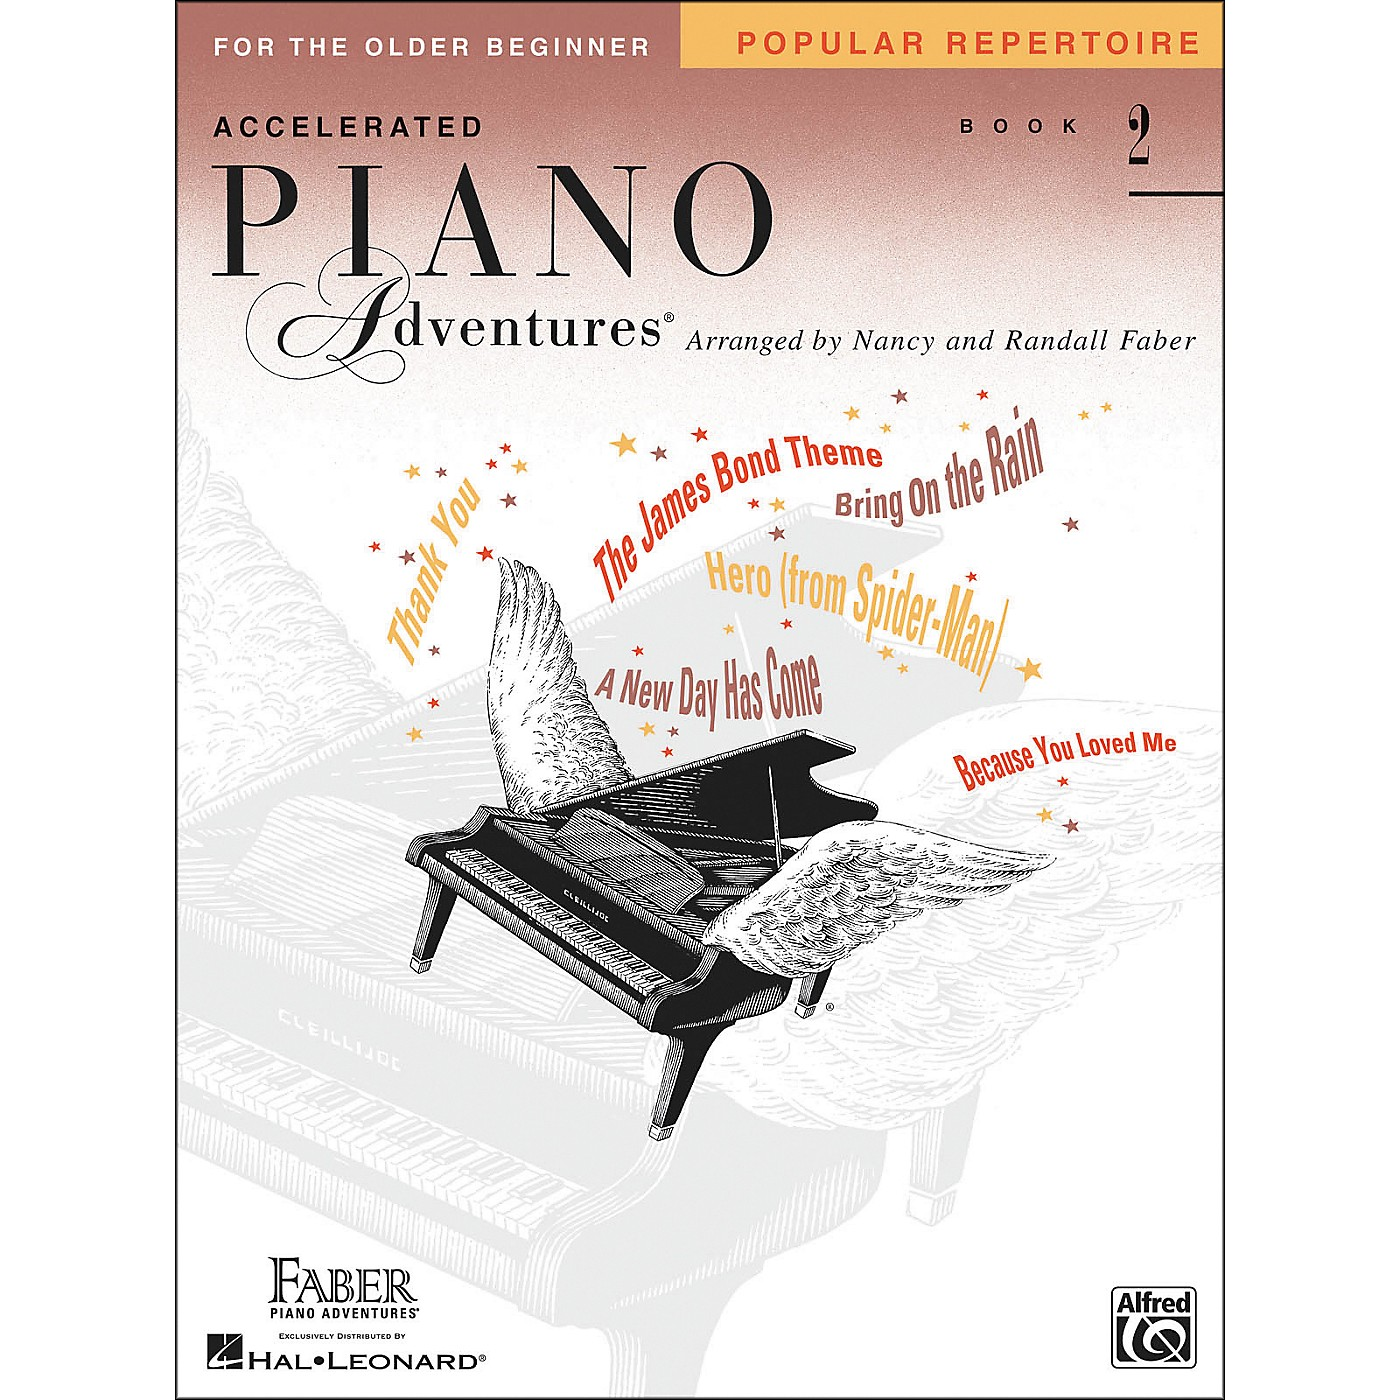 Faber Piano Adventures Accelerated Piano Adventures Pop Repertoire Book 2 - Faber Piano thumbnail